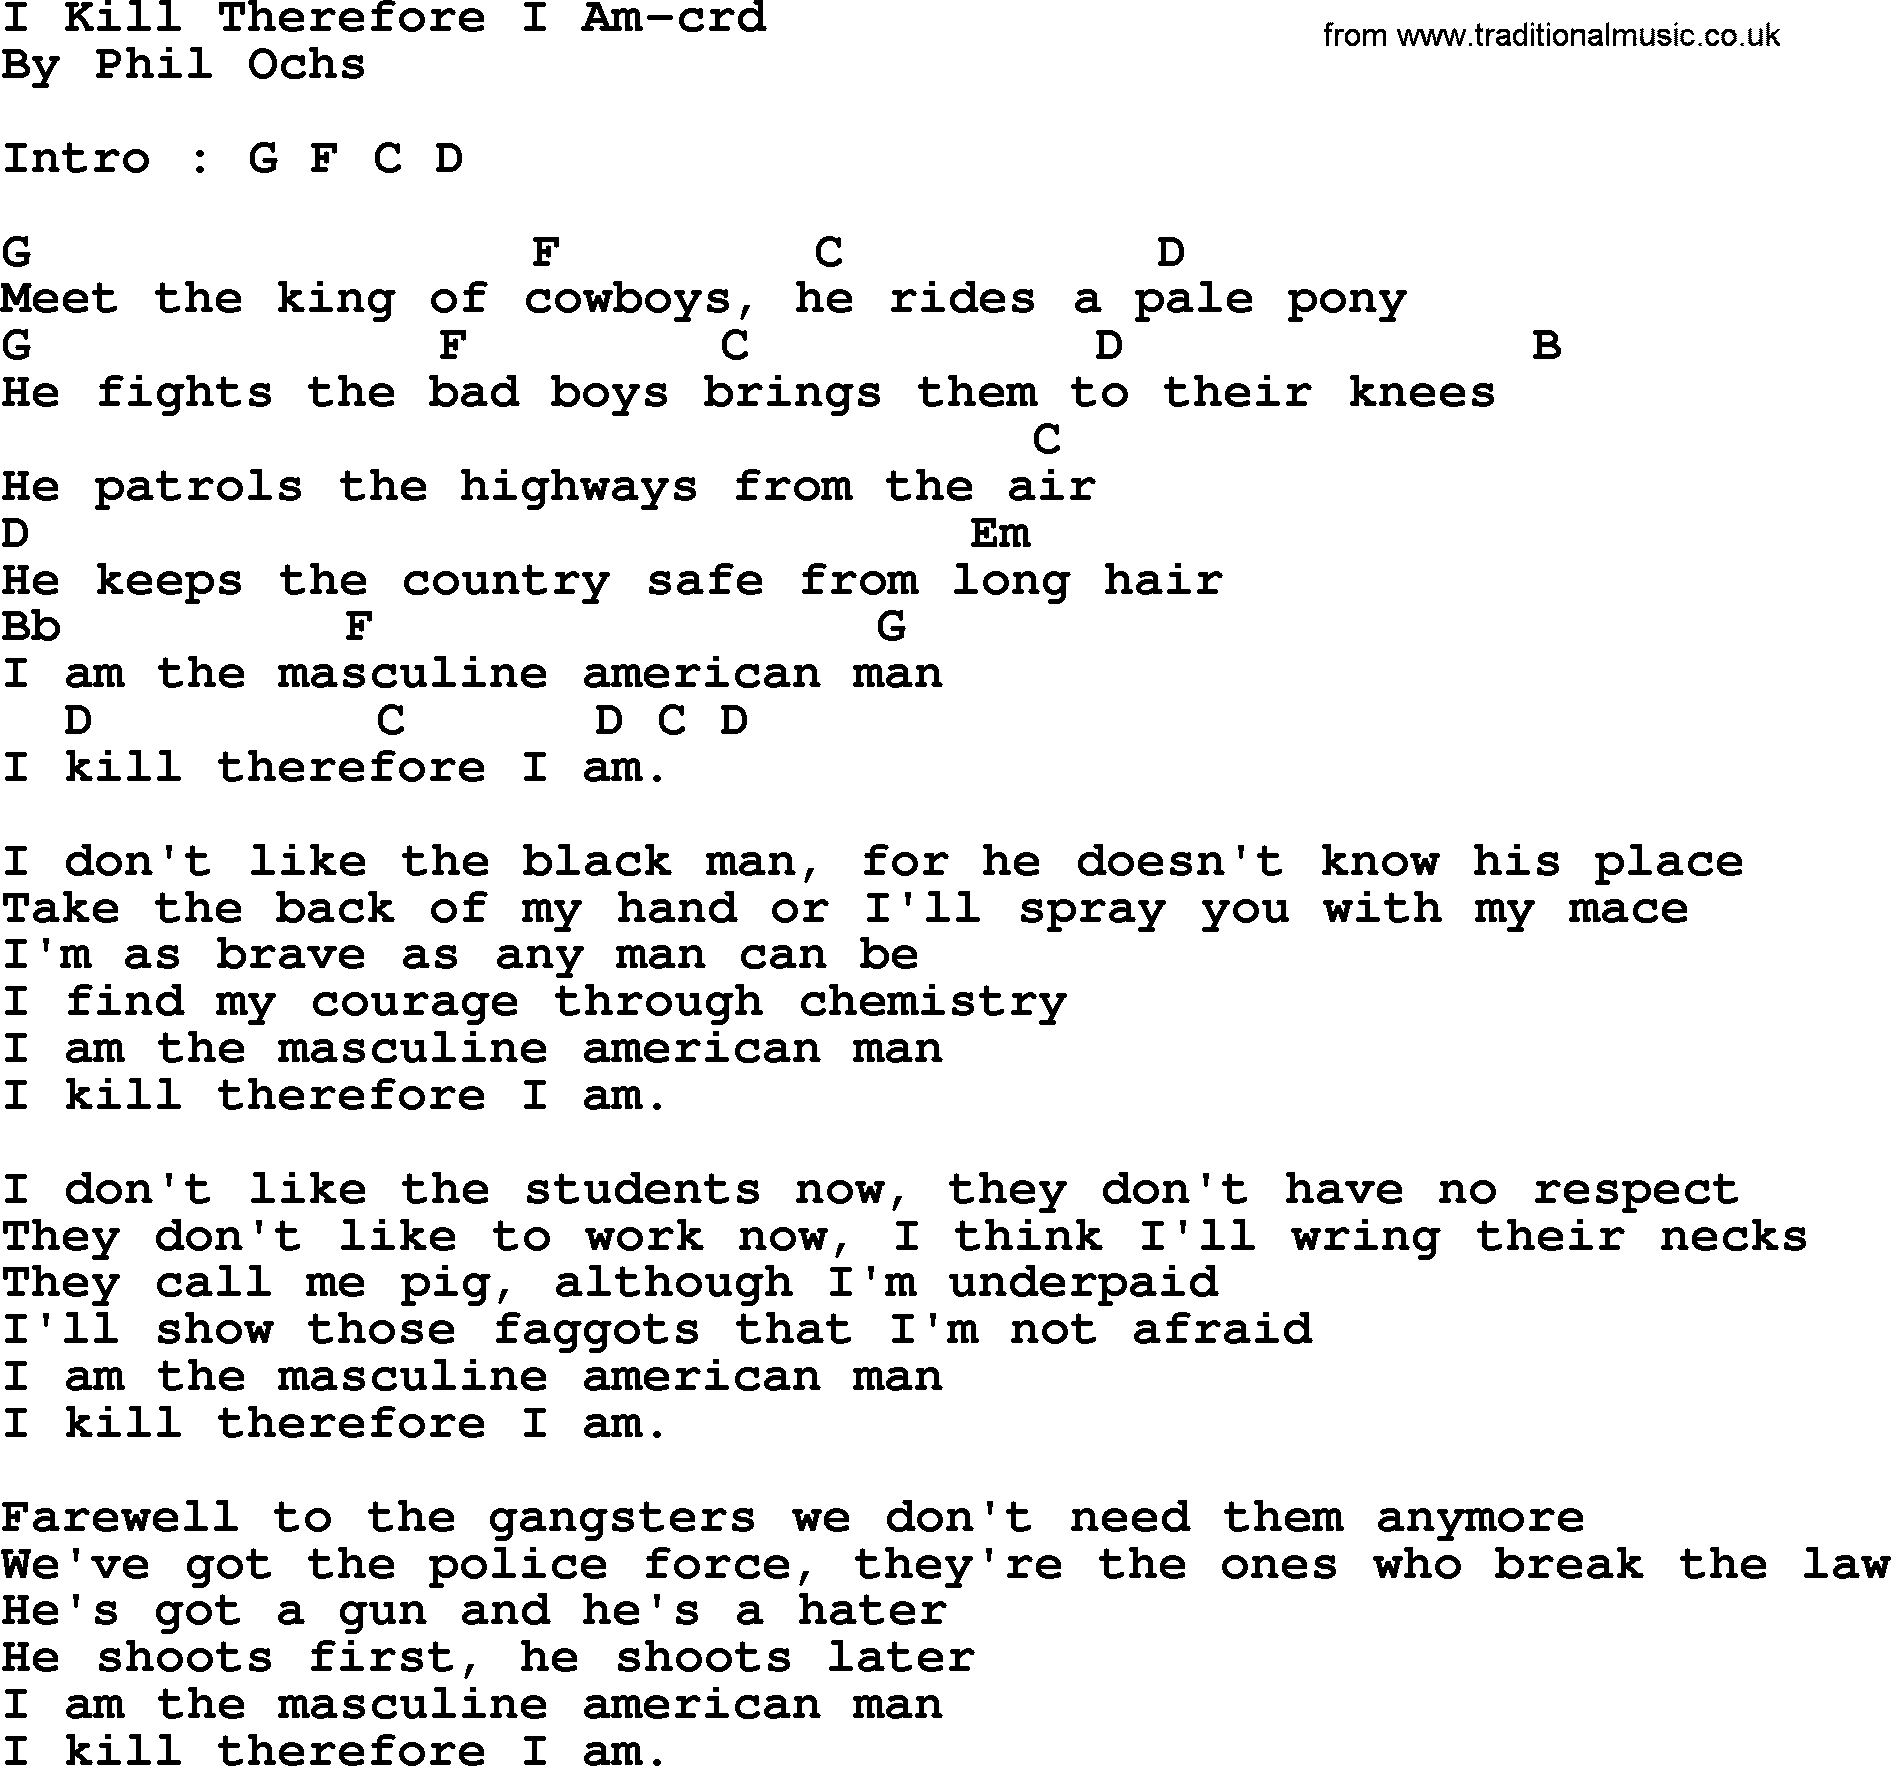 Be not afraid guitar chords gallery guitar chords examples songbook guitar chords phil ochs song i kill therefore i am lyrics and chords fatherlandz gallery hexwebz Gallery